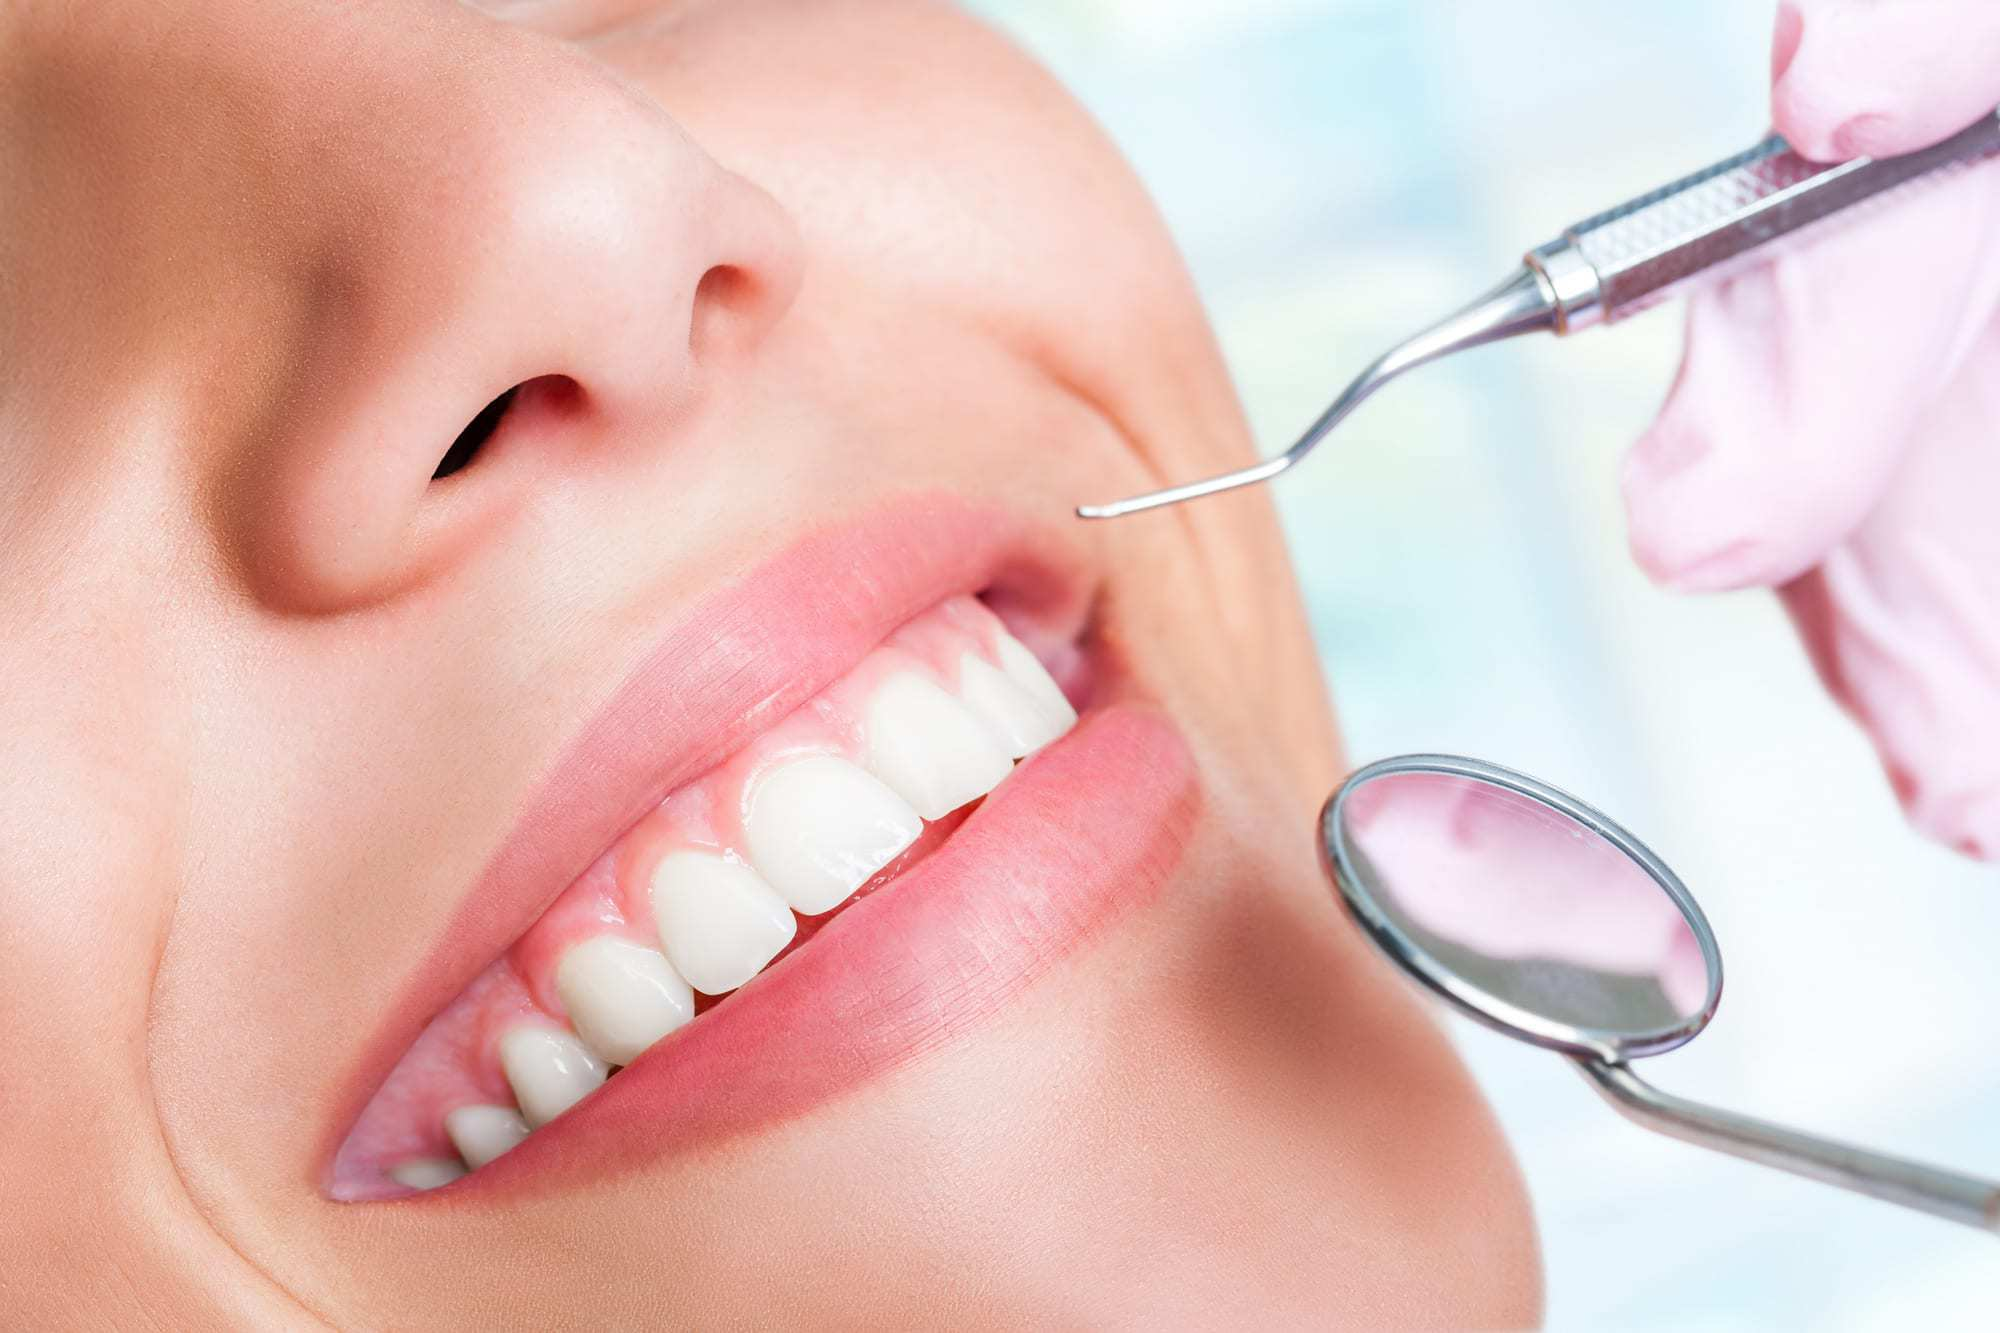 10 Tips For Taking Good Care Of Your Teeth